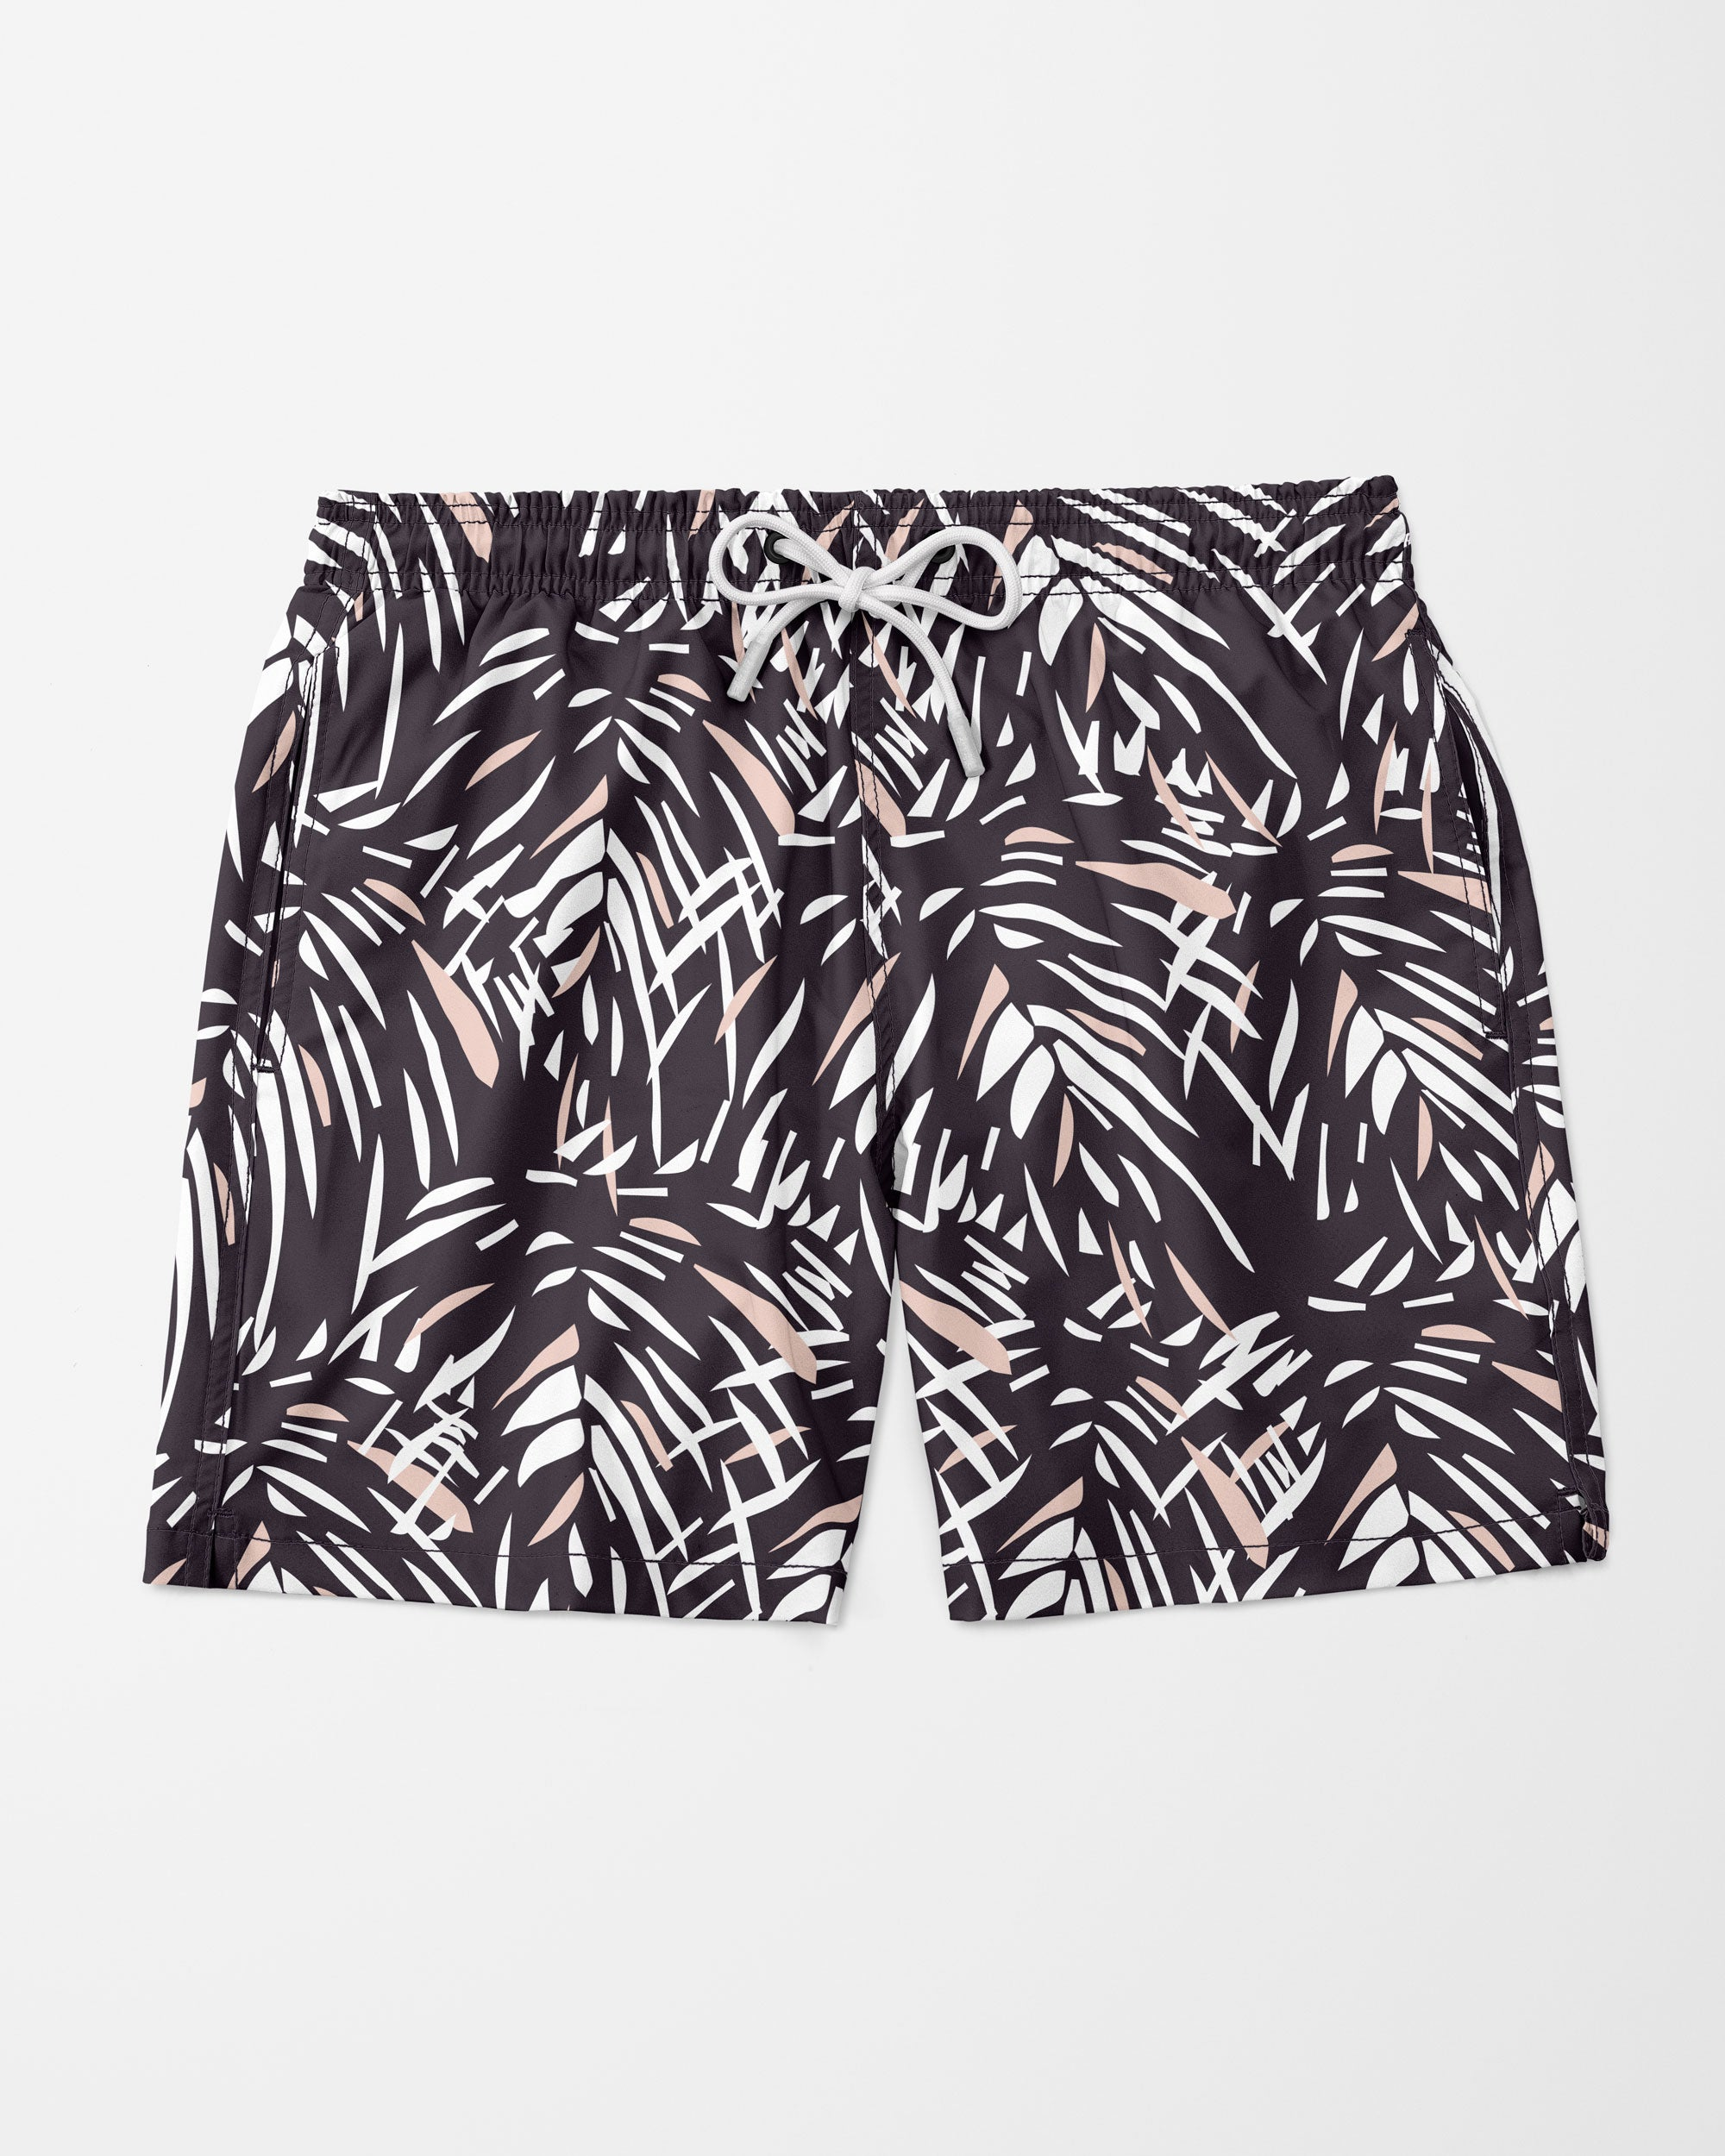 Jungle Swim Shorts, Black